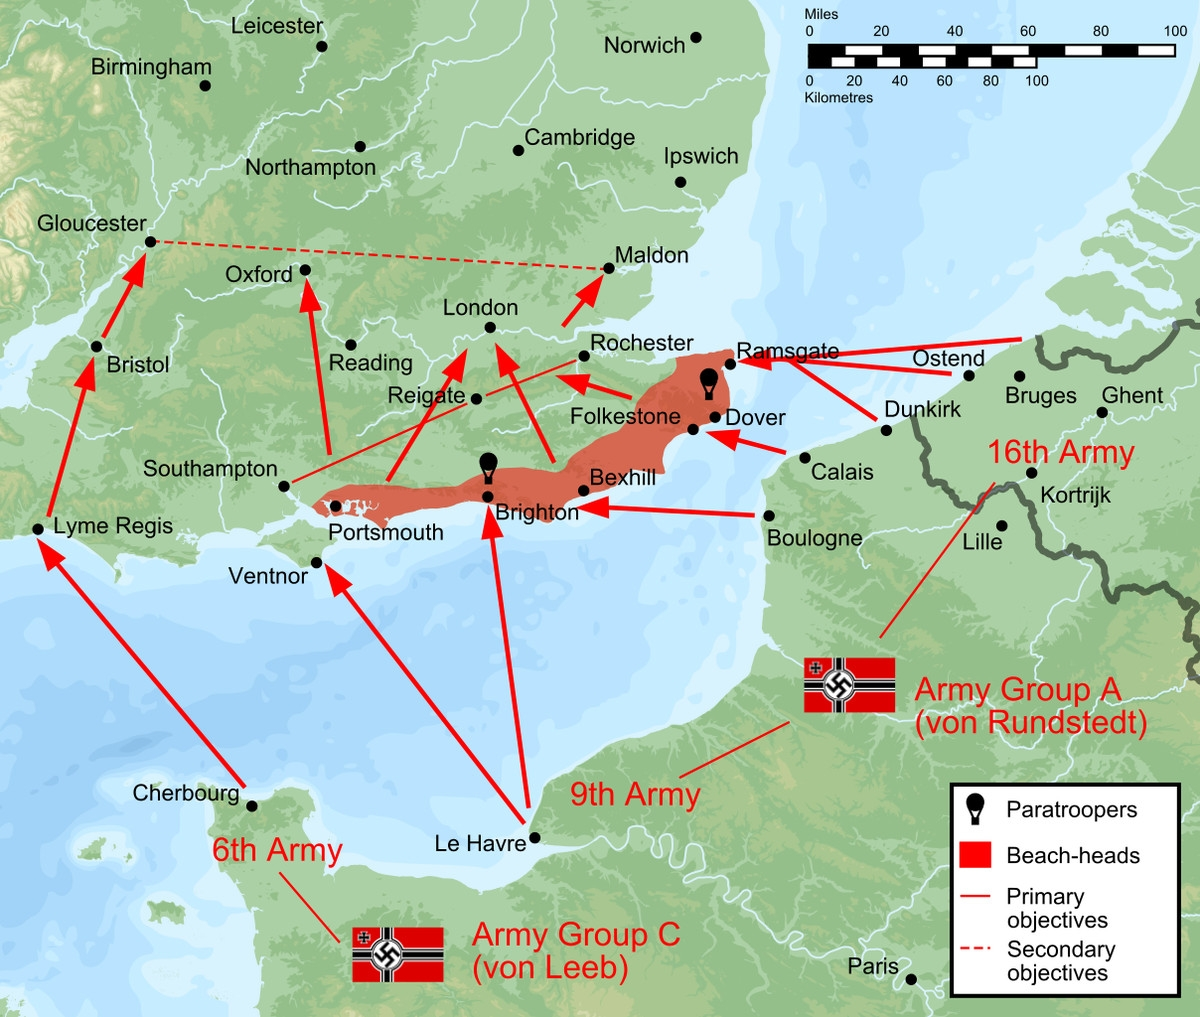 42 Maps That Explain World War Ii - Vox in Map German Occupation During Ww2